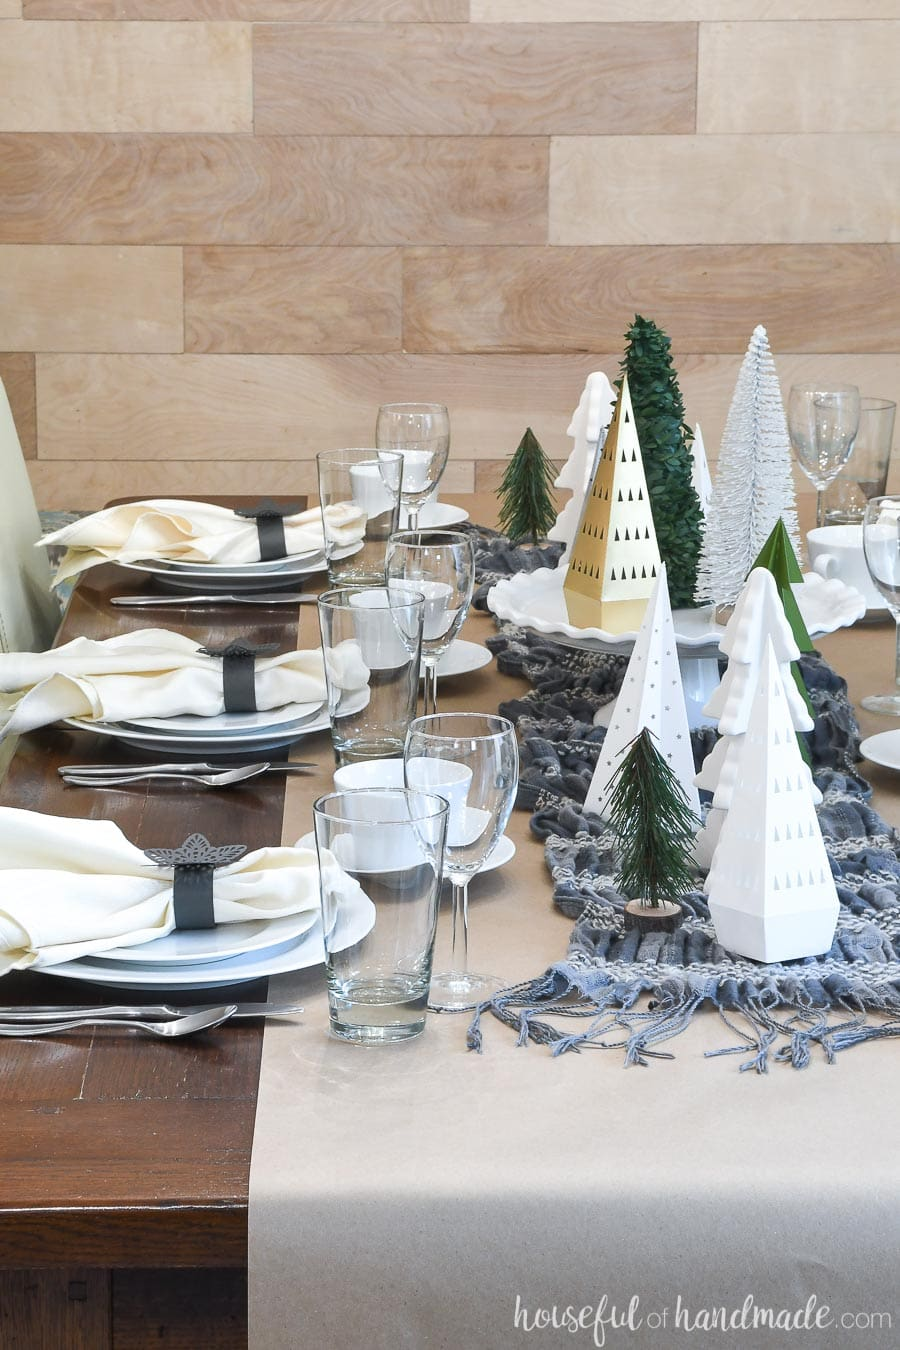 A winter table decorated with left-over Christmas decorations made from paper.